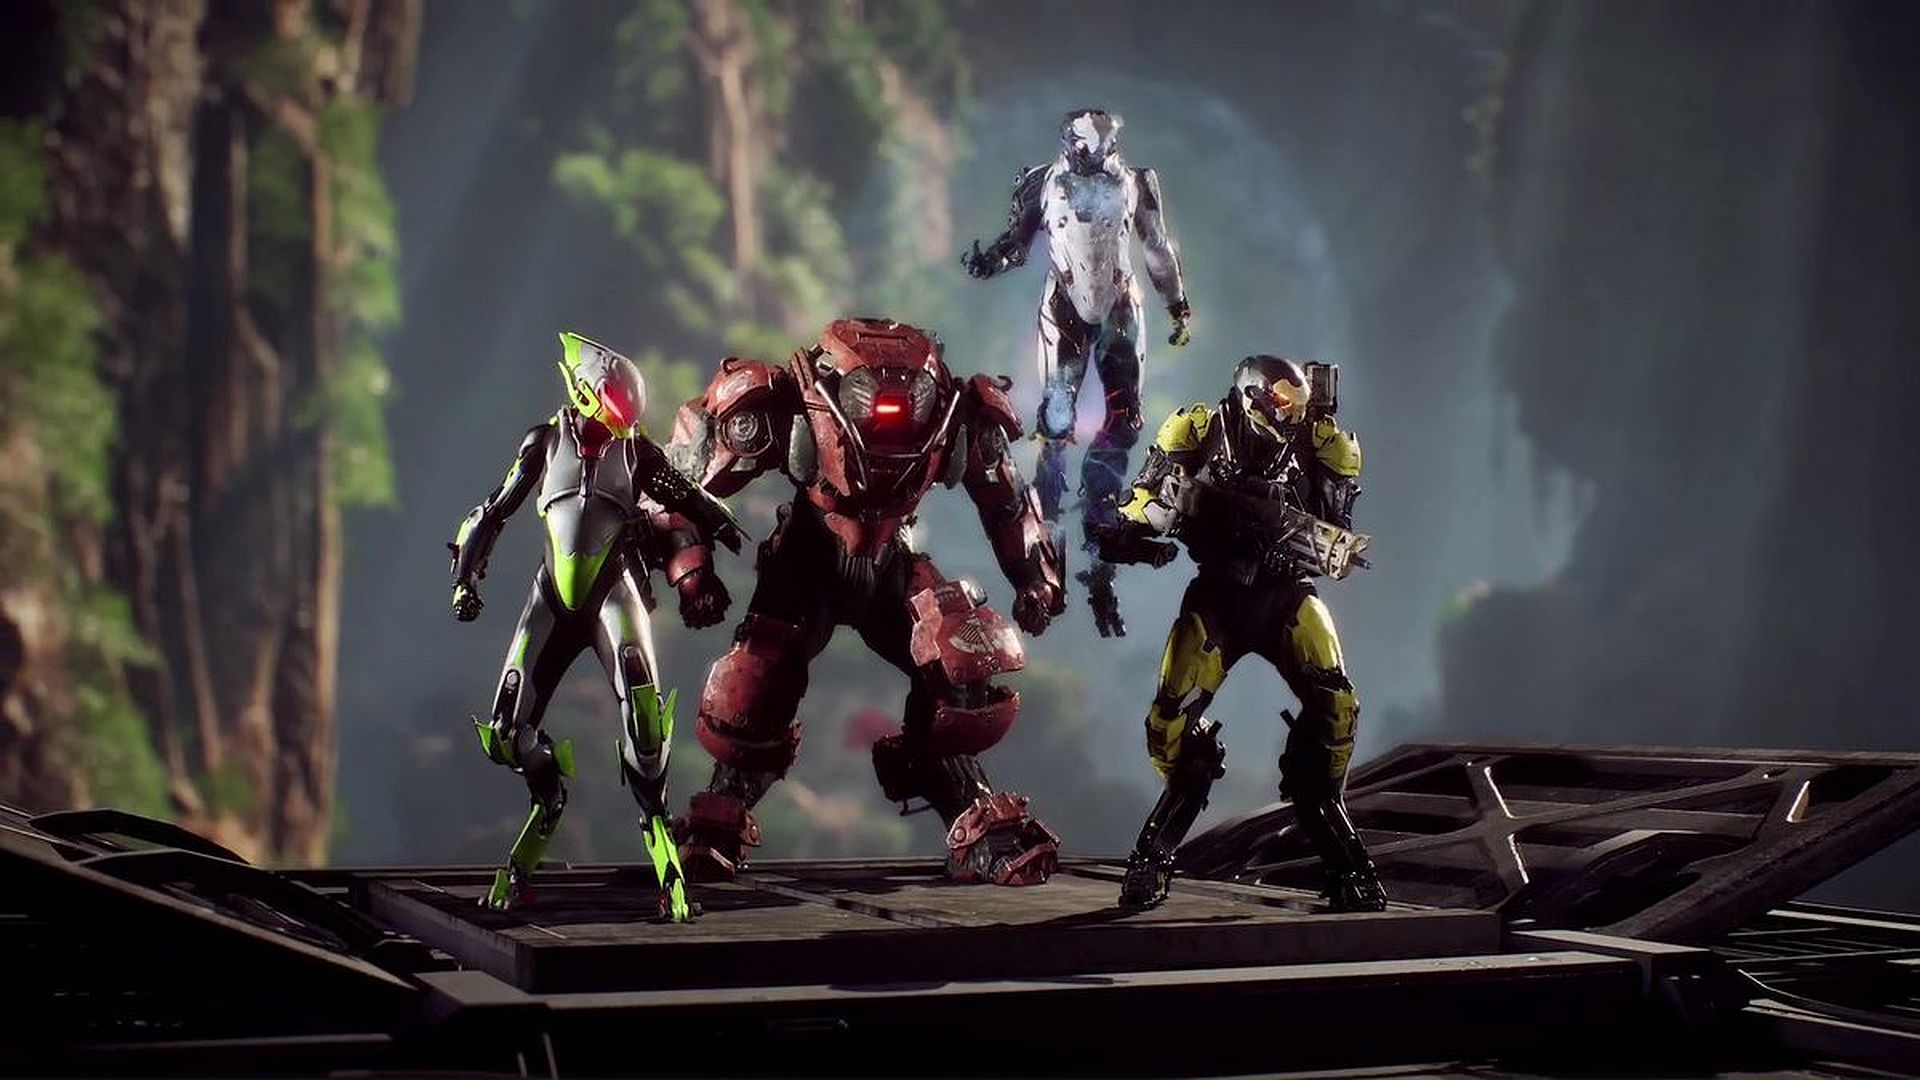 Anthem: Is There Splitscreen Co-Op Multiplayer? Answered